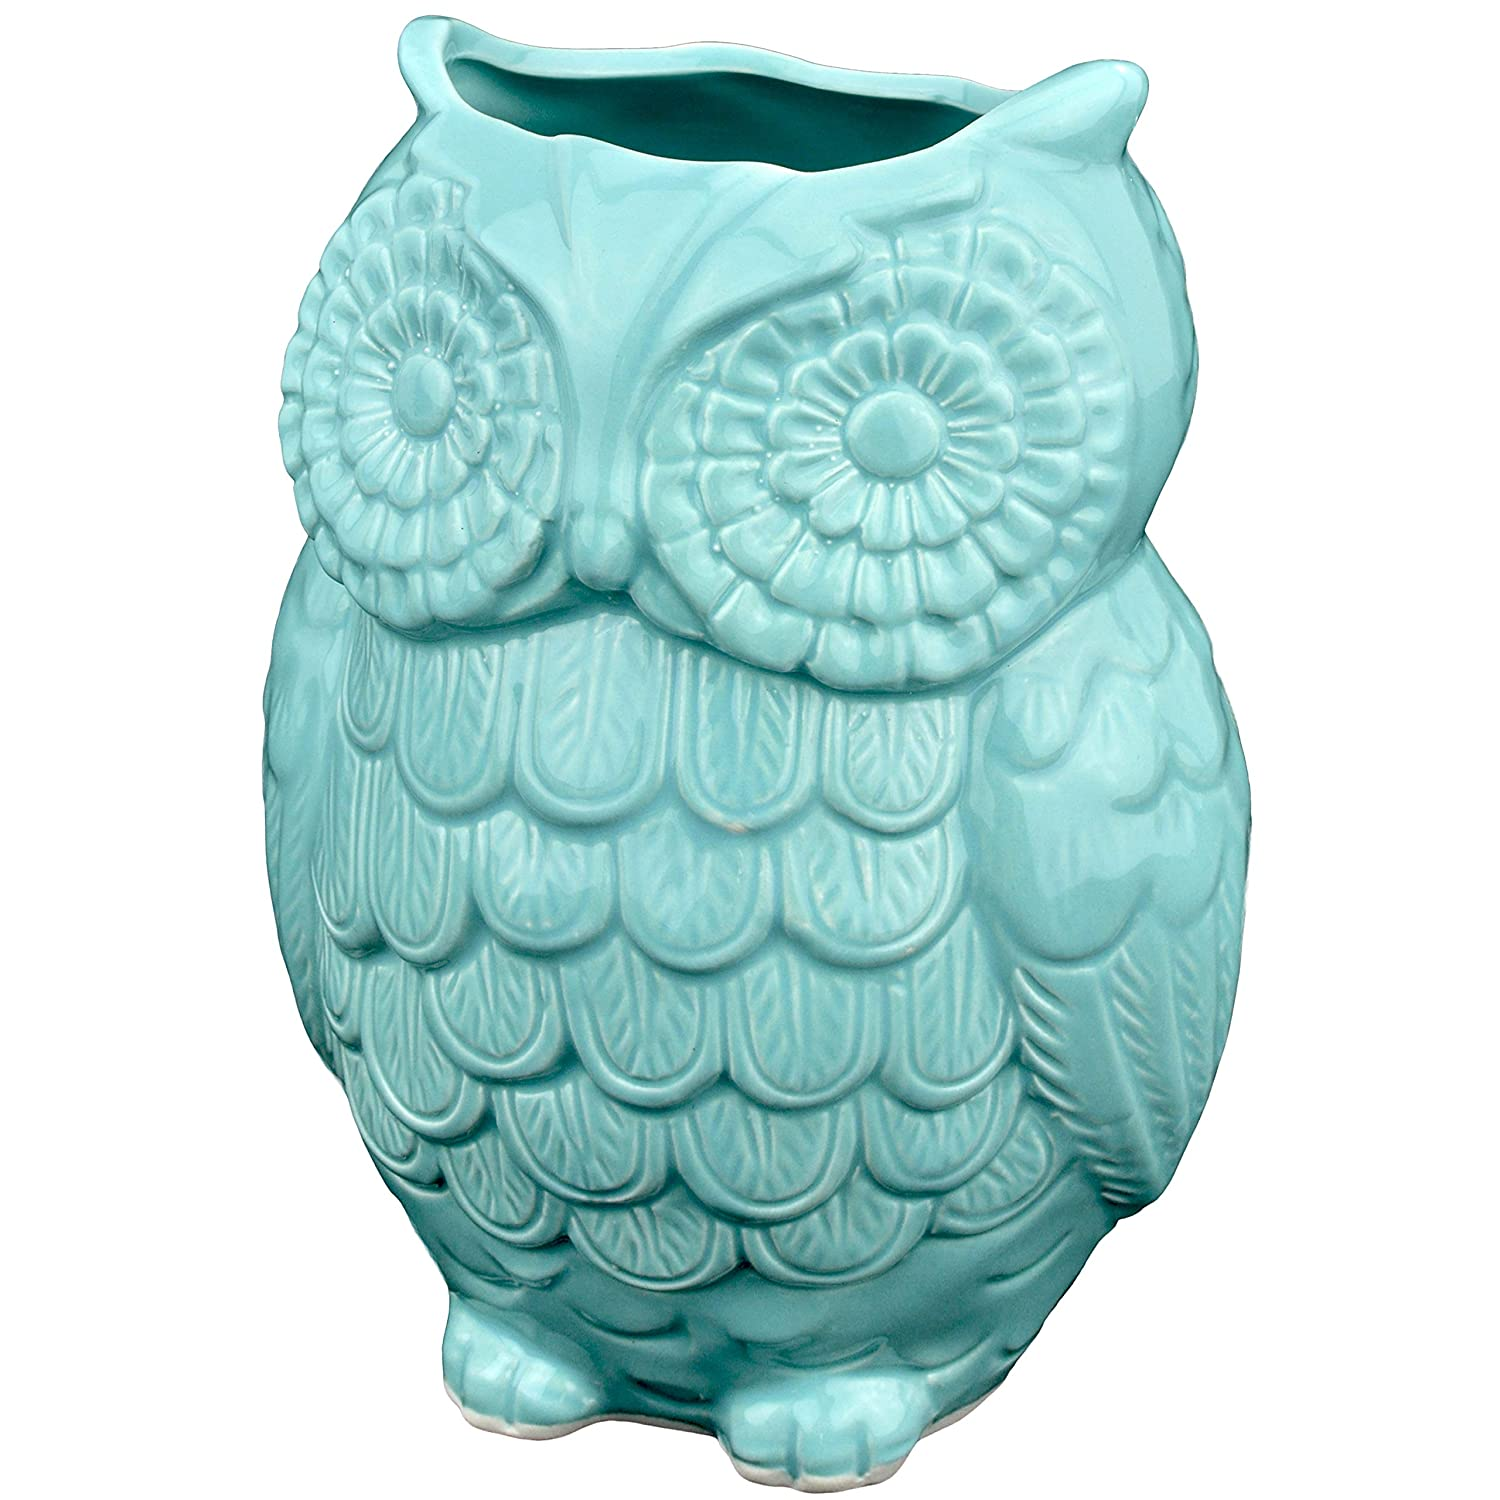 MyGift® Aqua Blue Owl Design Ceramic Cooking Utensil Holder / Multipurpose Kitchen Storage Crock TB-KIT0055BLU